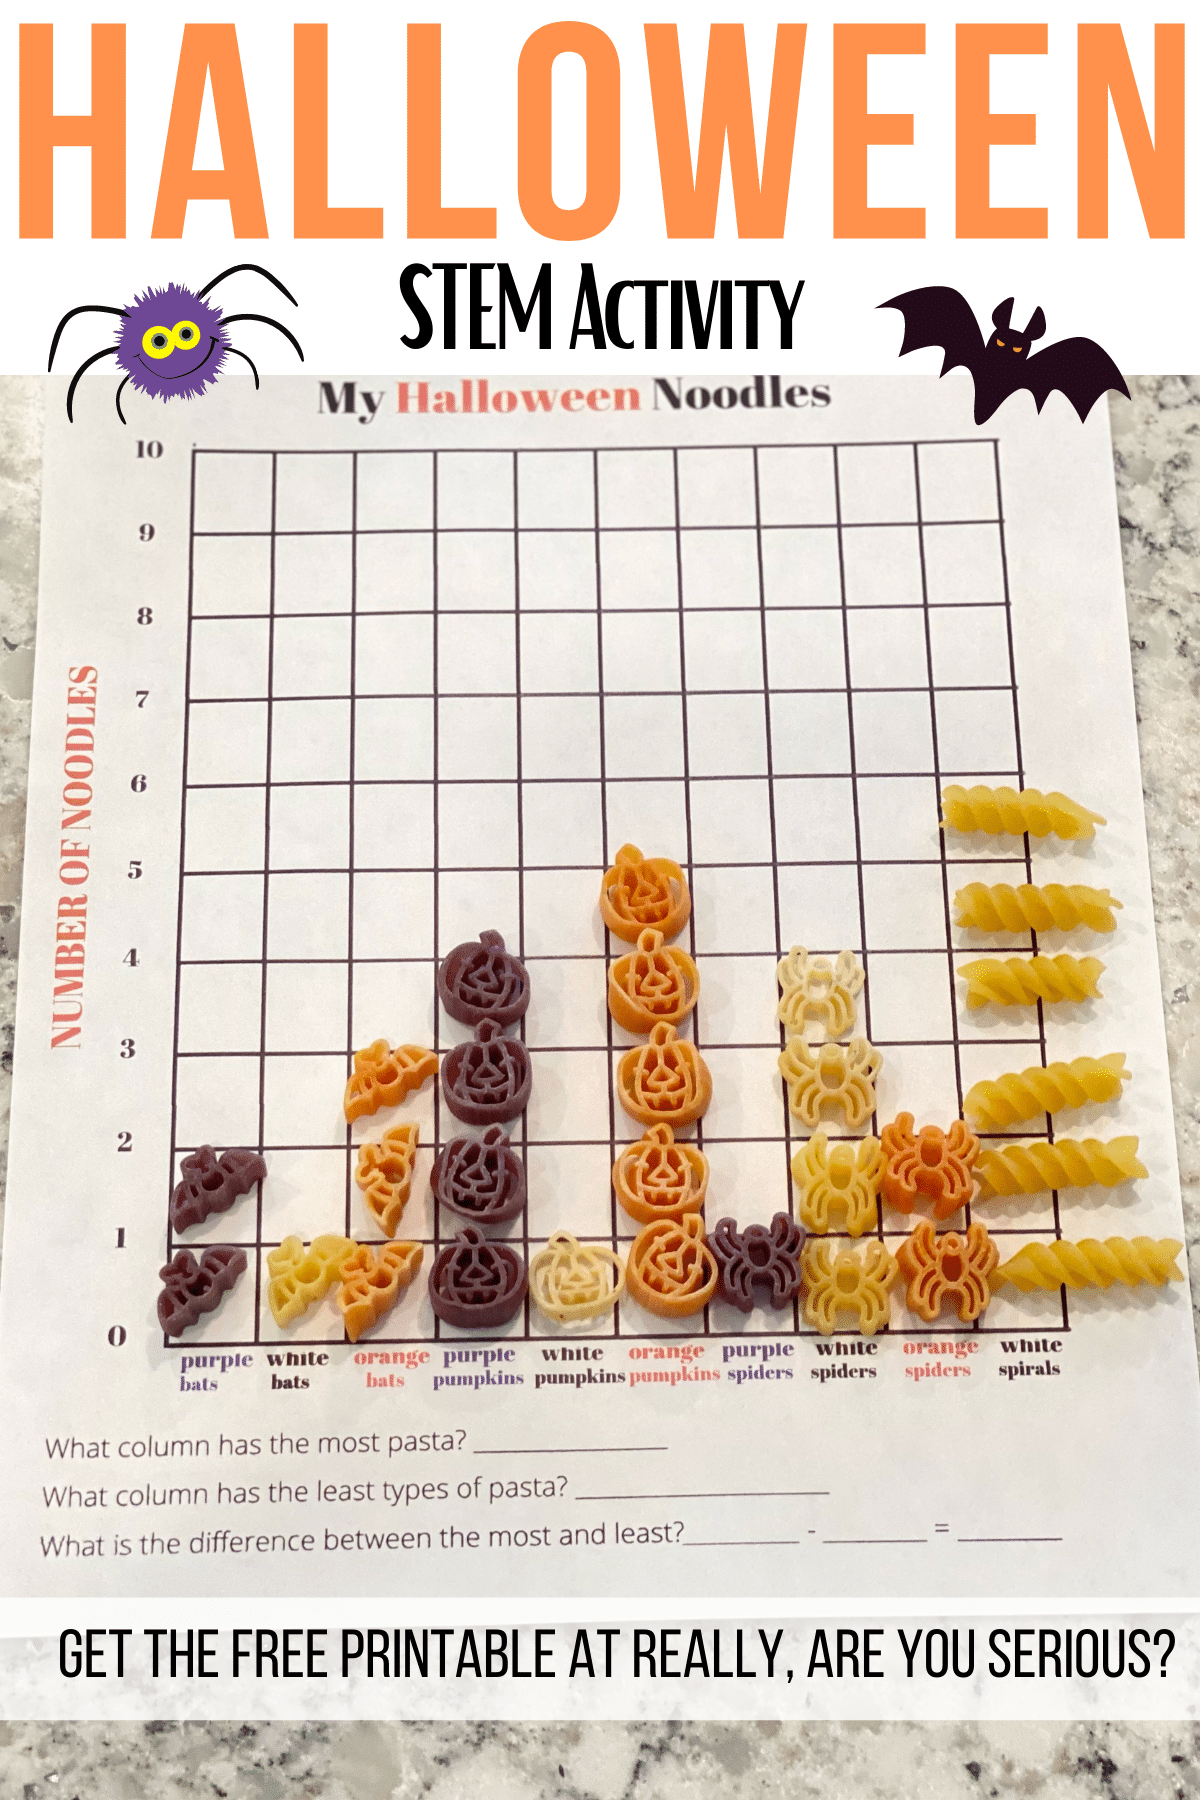 halloween noodle activity sheet free printable